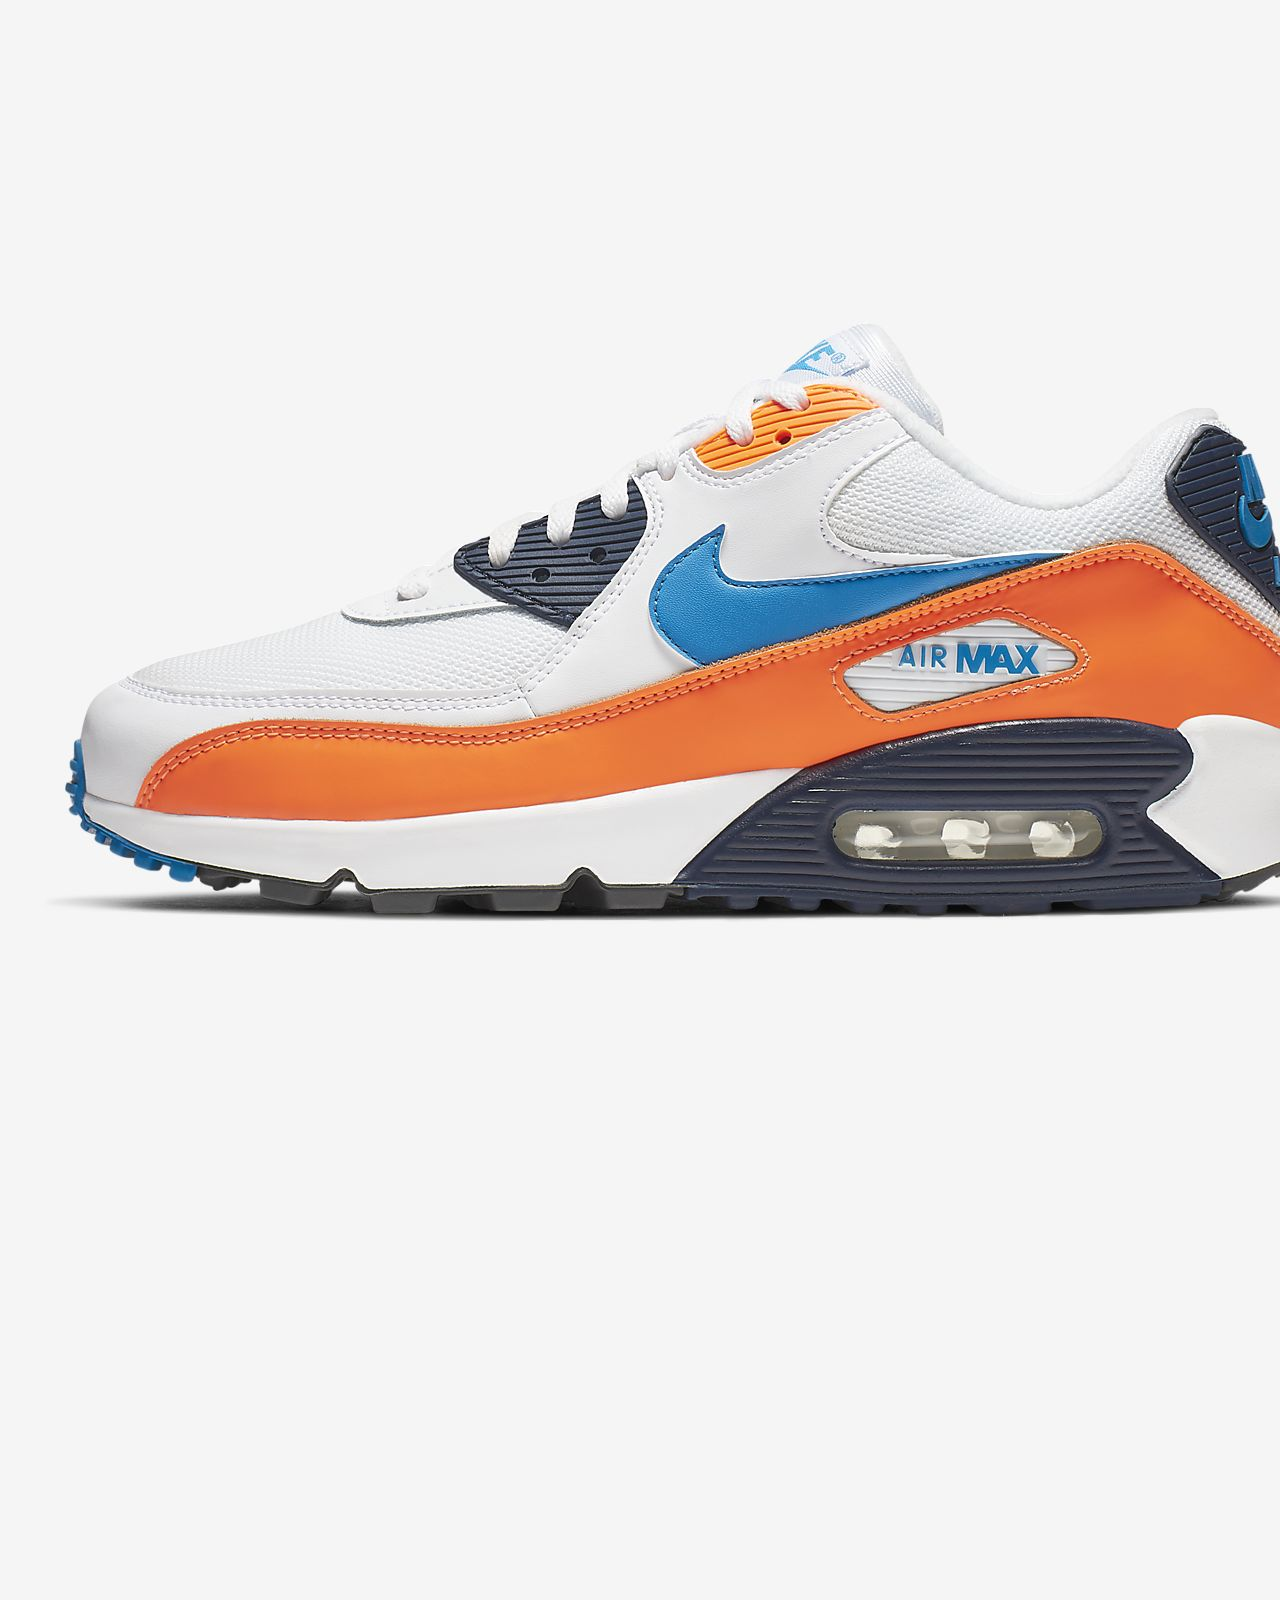 0b35d0e07c Nike Air Max 90 Essential Men's Shoe. Nike.com